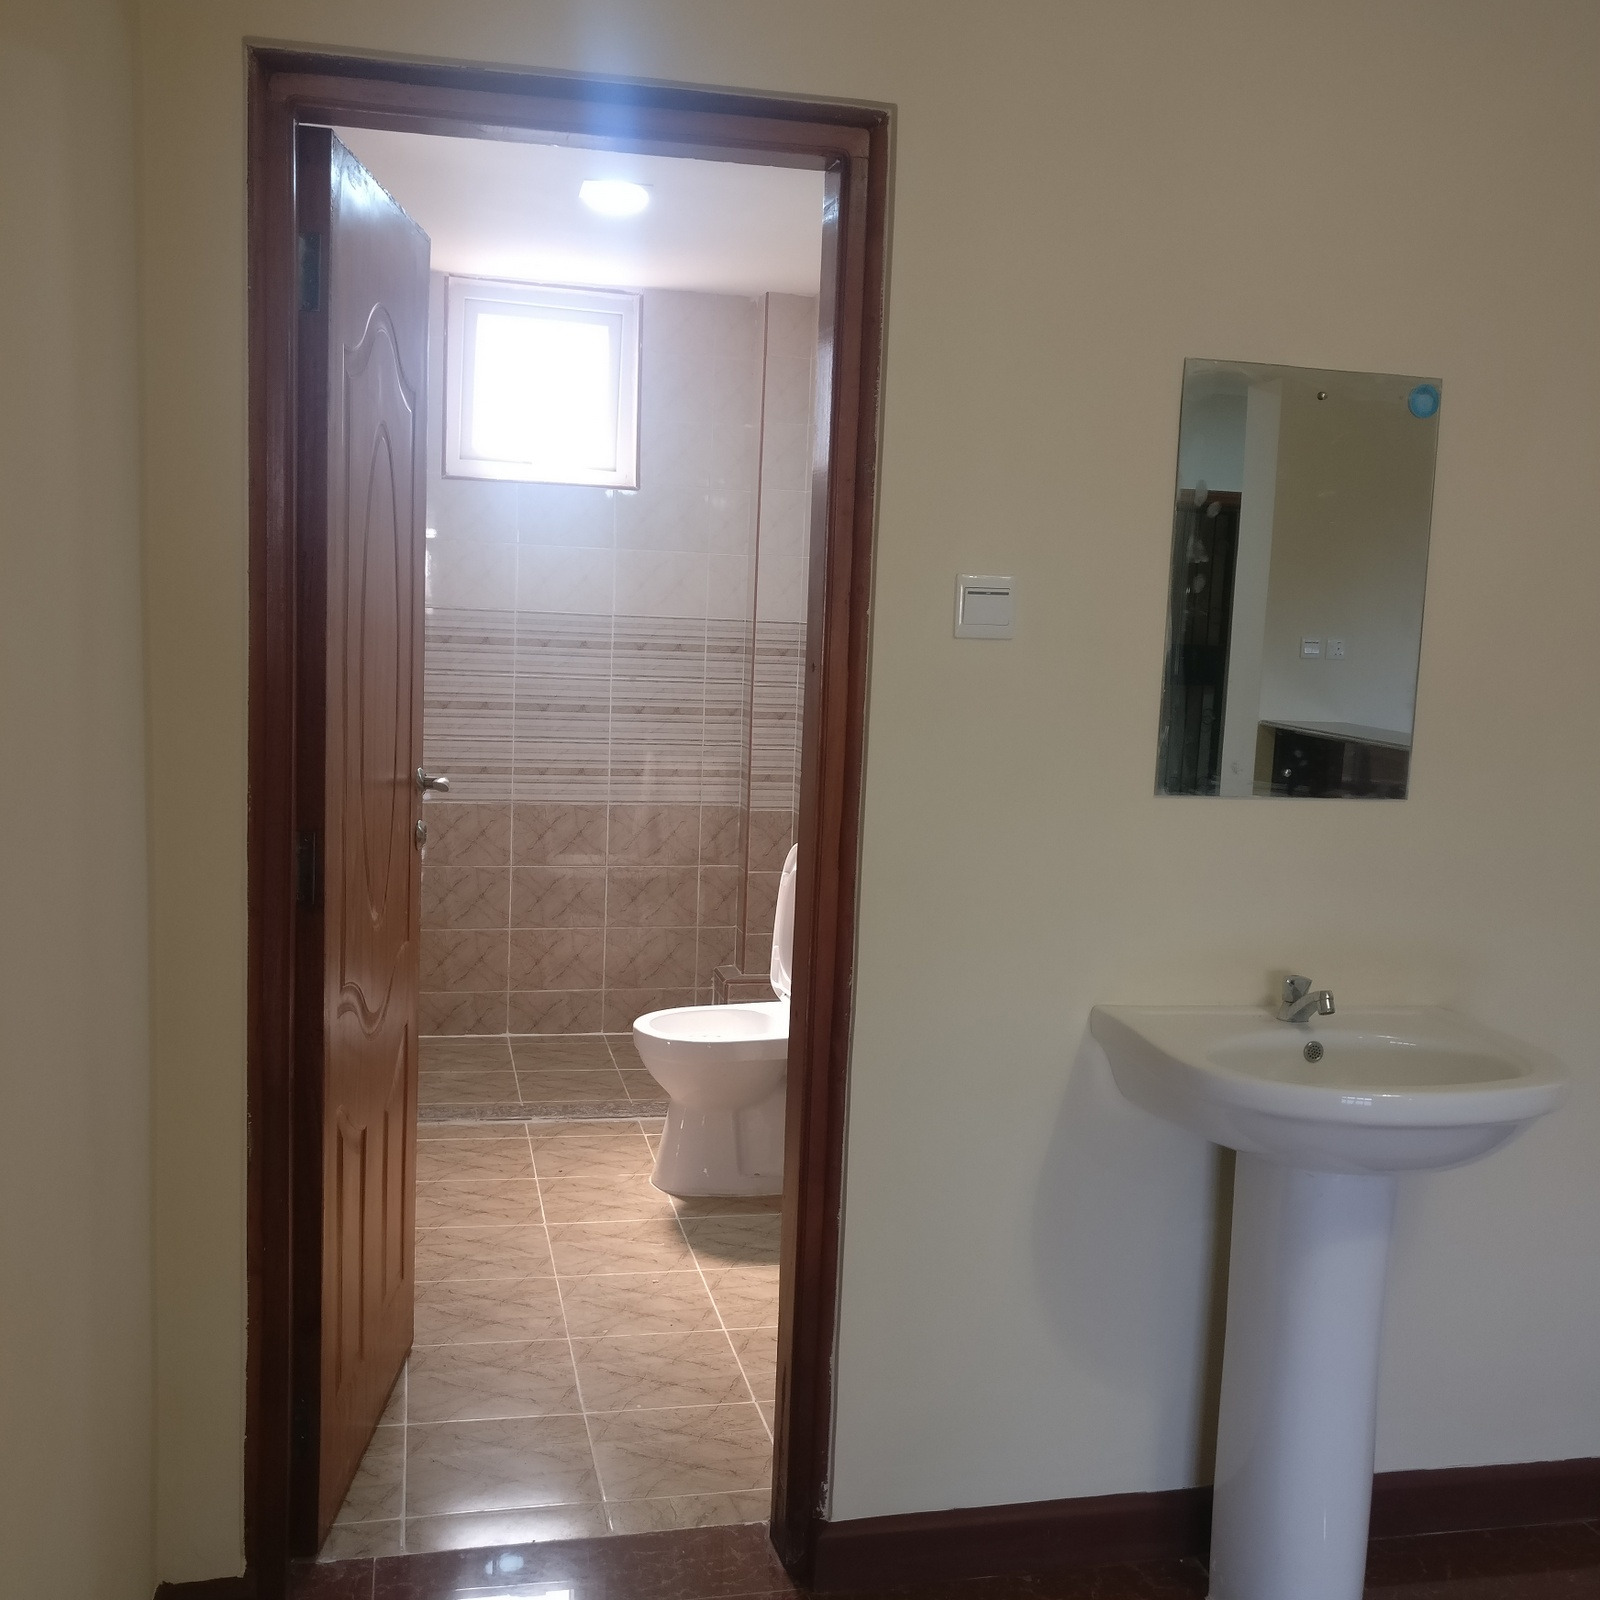 3 Bedroom Apartments For Rent In Riara Gardens, Ngong Road